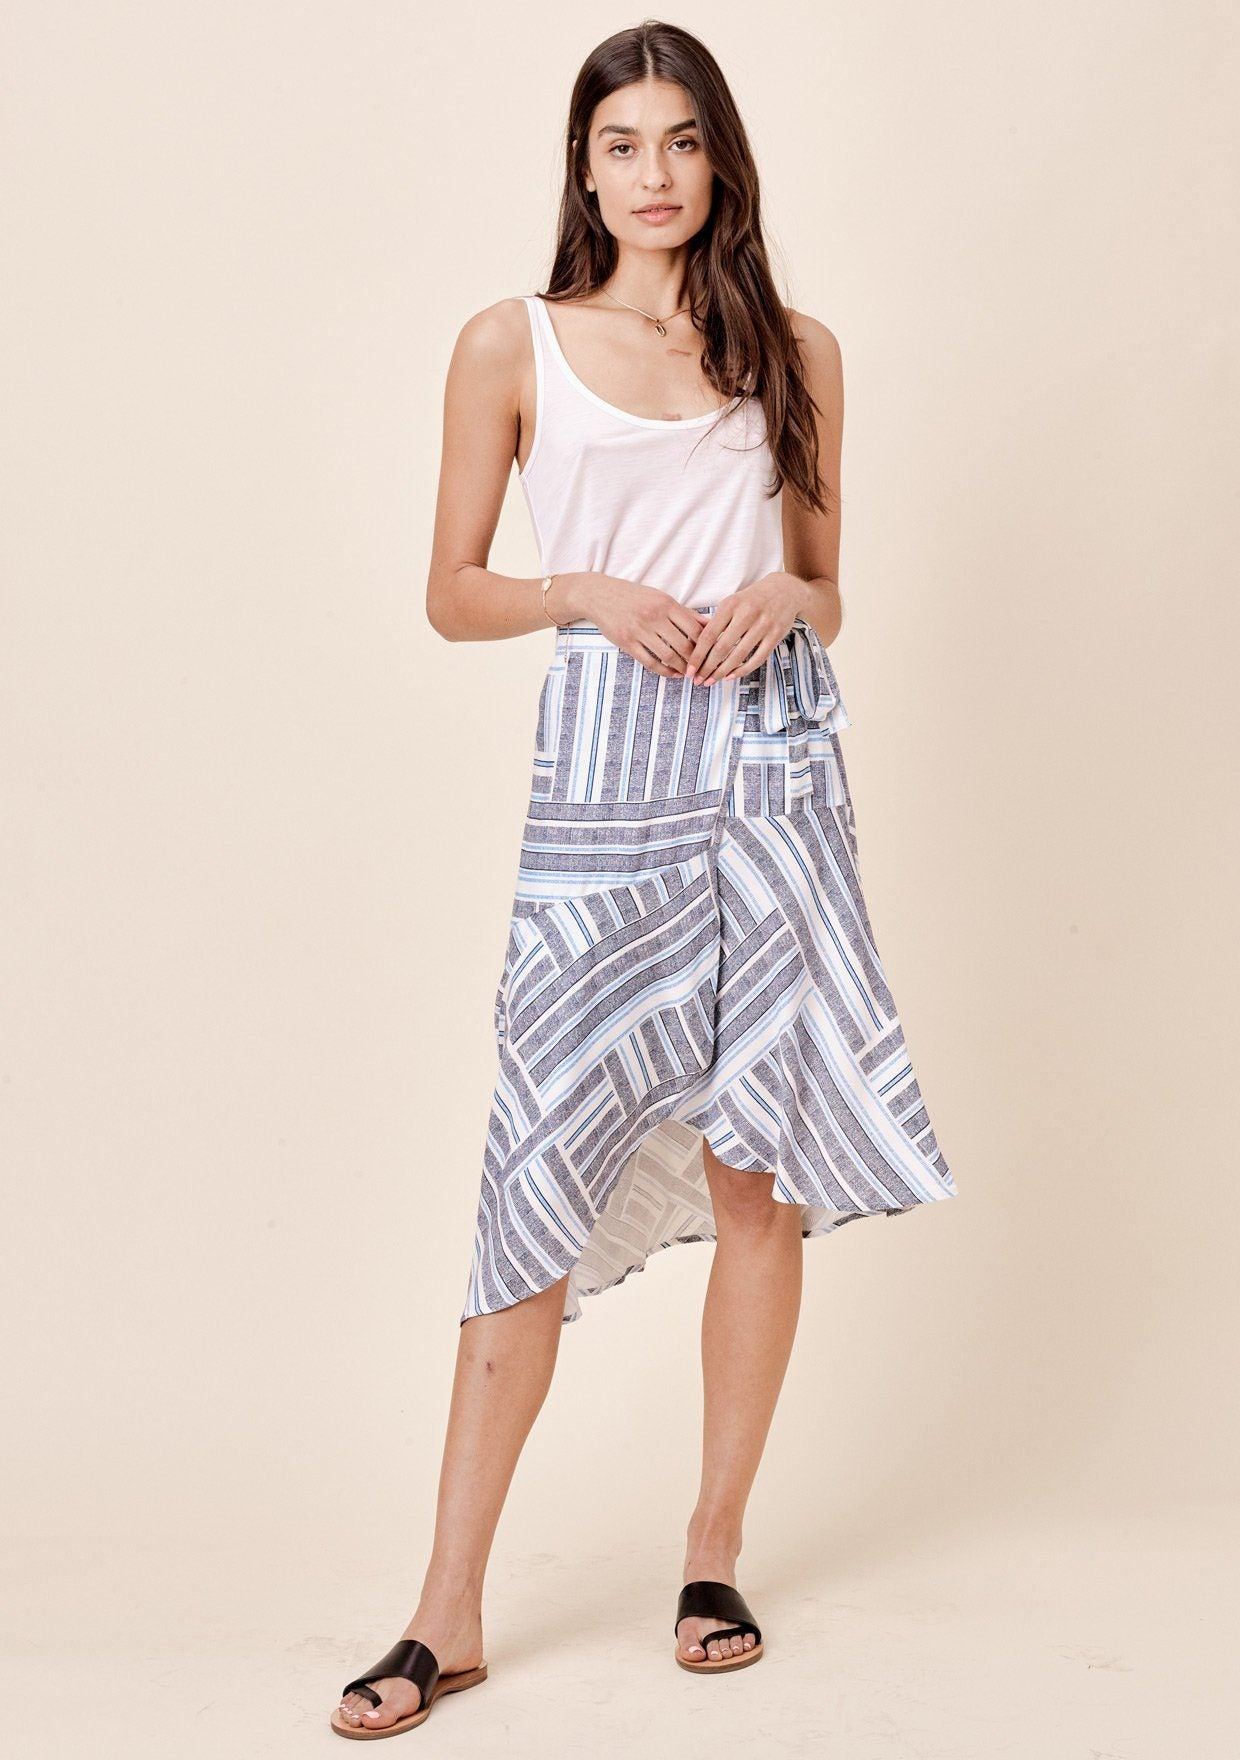 [Color: Navy Stripe] Lovestitch multi-striped wrap skirt with side tie closure.